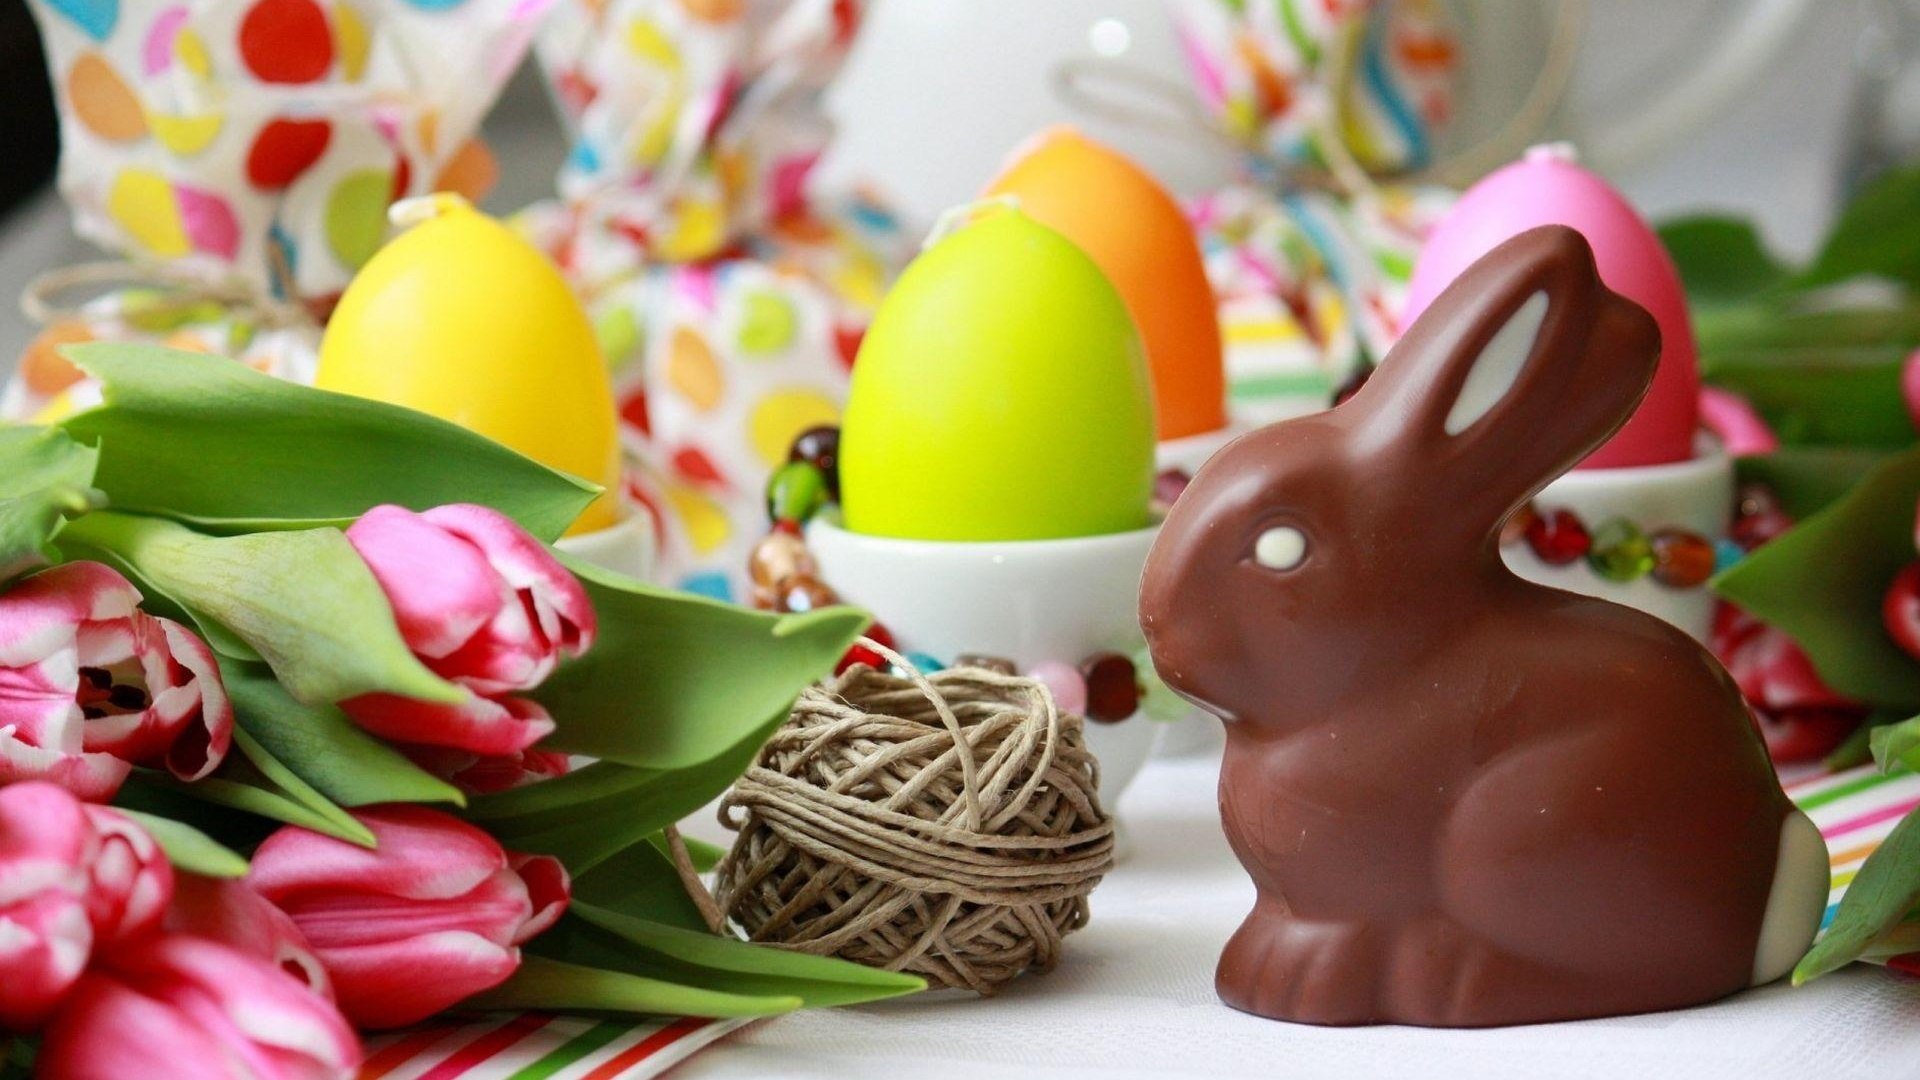 Download Wallpaper 1920x1080 Easter Rabbit Chocolate Eggs